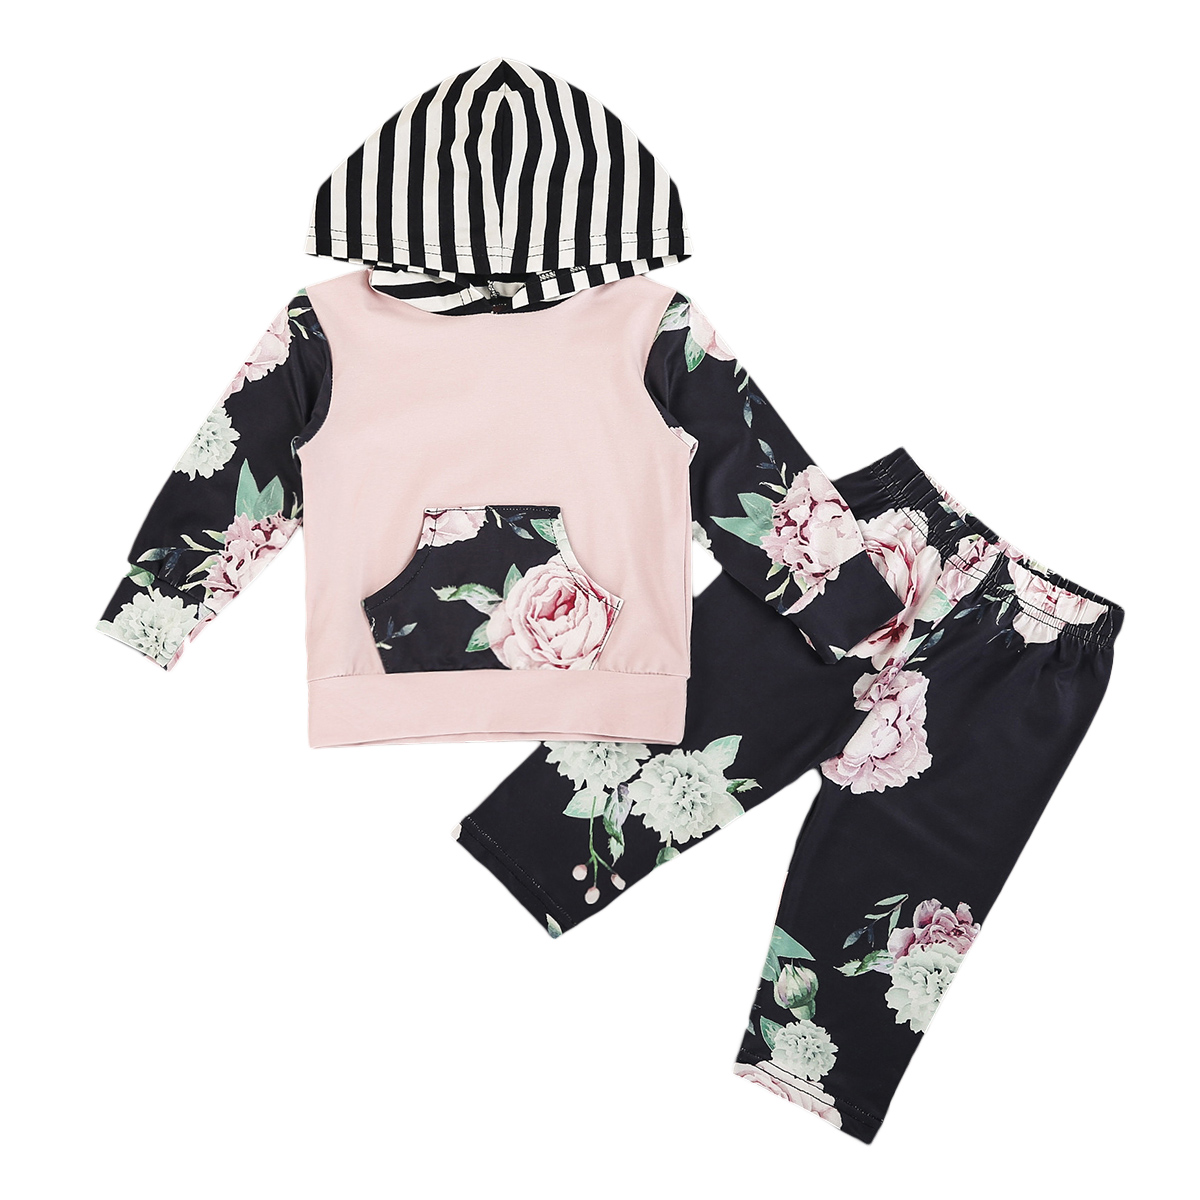 2pcs Newborn Toddler Baby Boy Girl Hooded Sweater Top+Pant Outfits Set Clothes